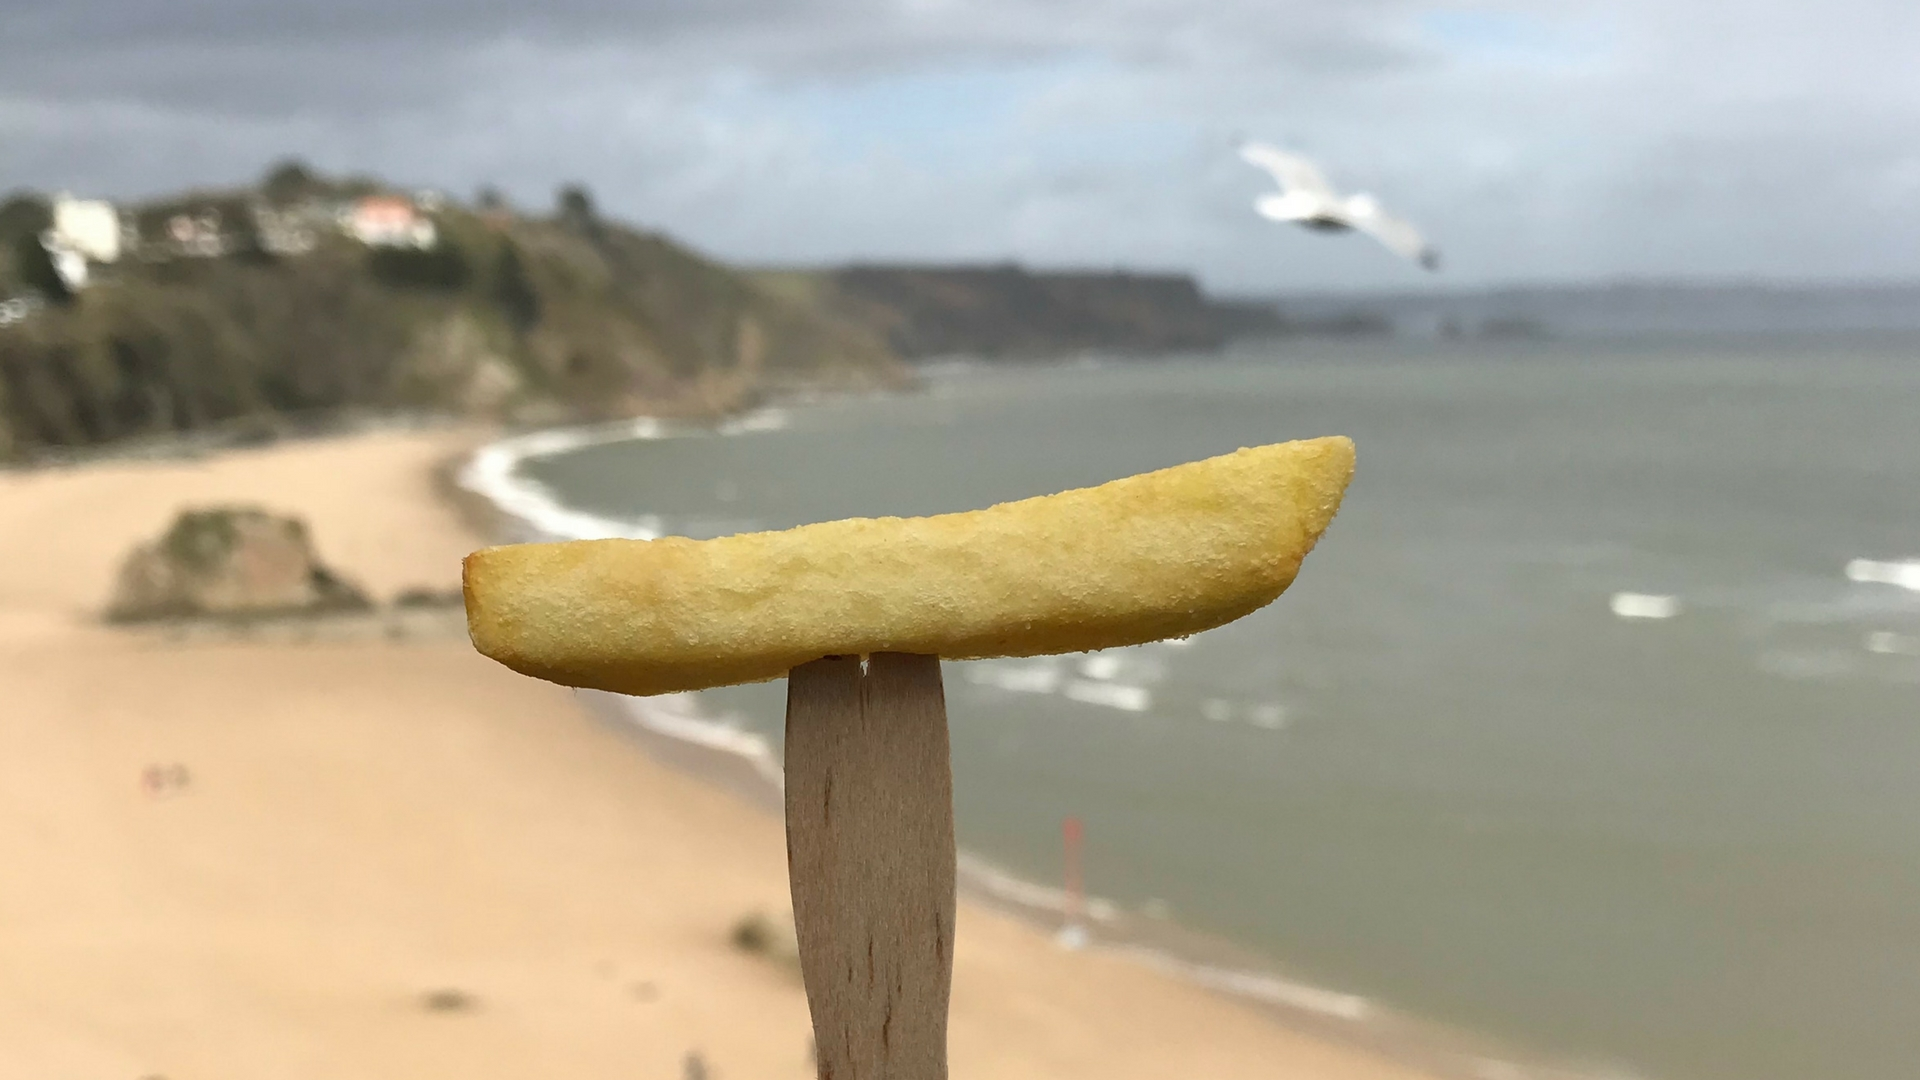 Chips on the beach!